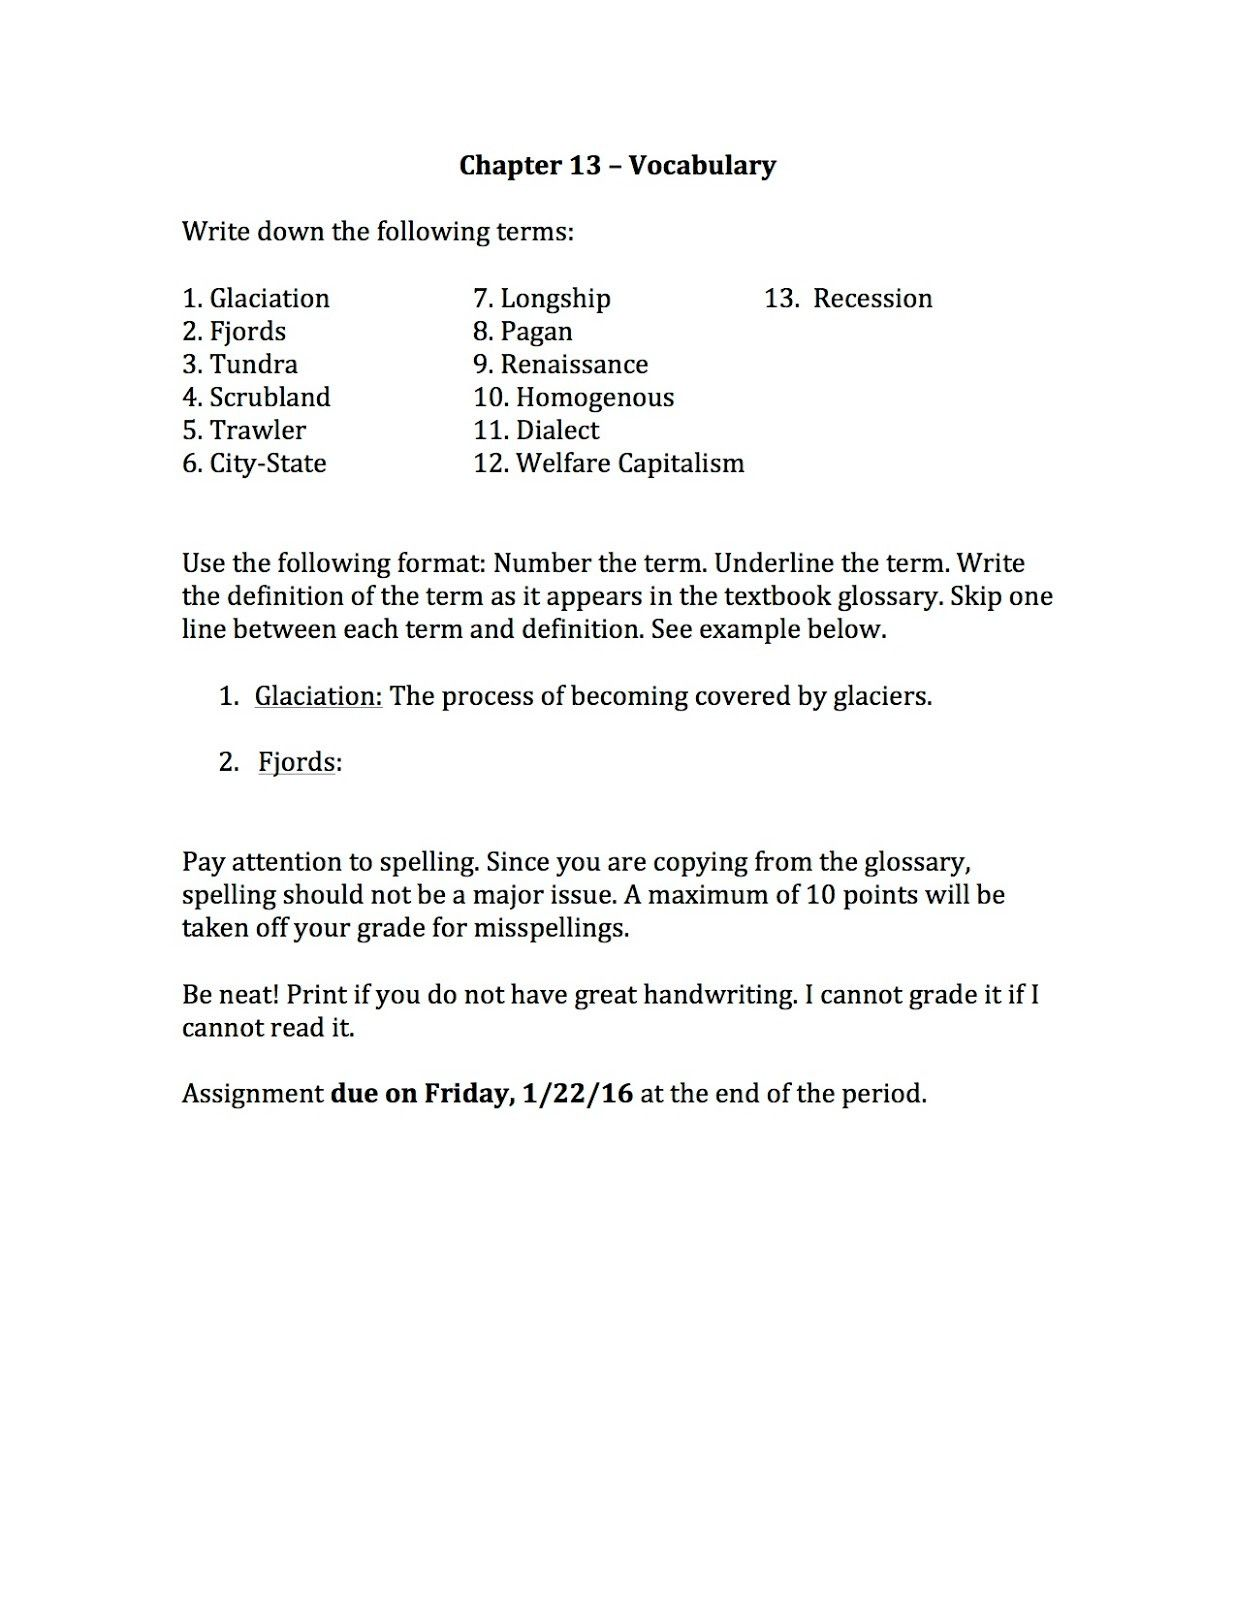 Prime Colligative Properties Worksheet Answers Dengan Gambar